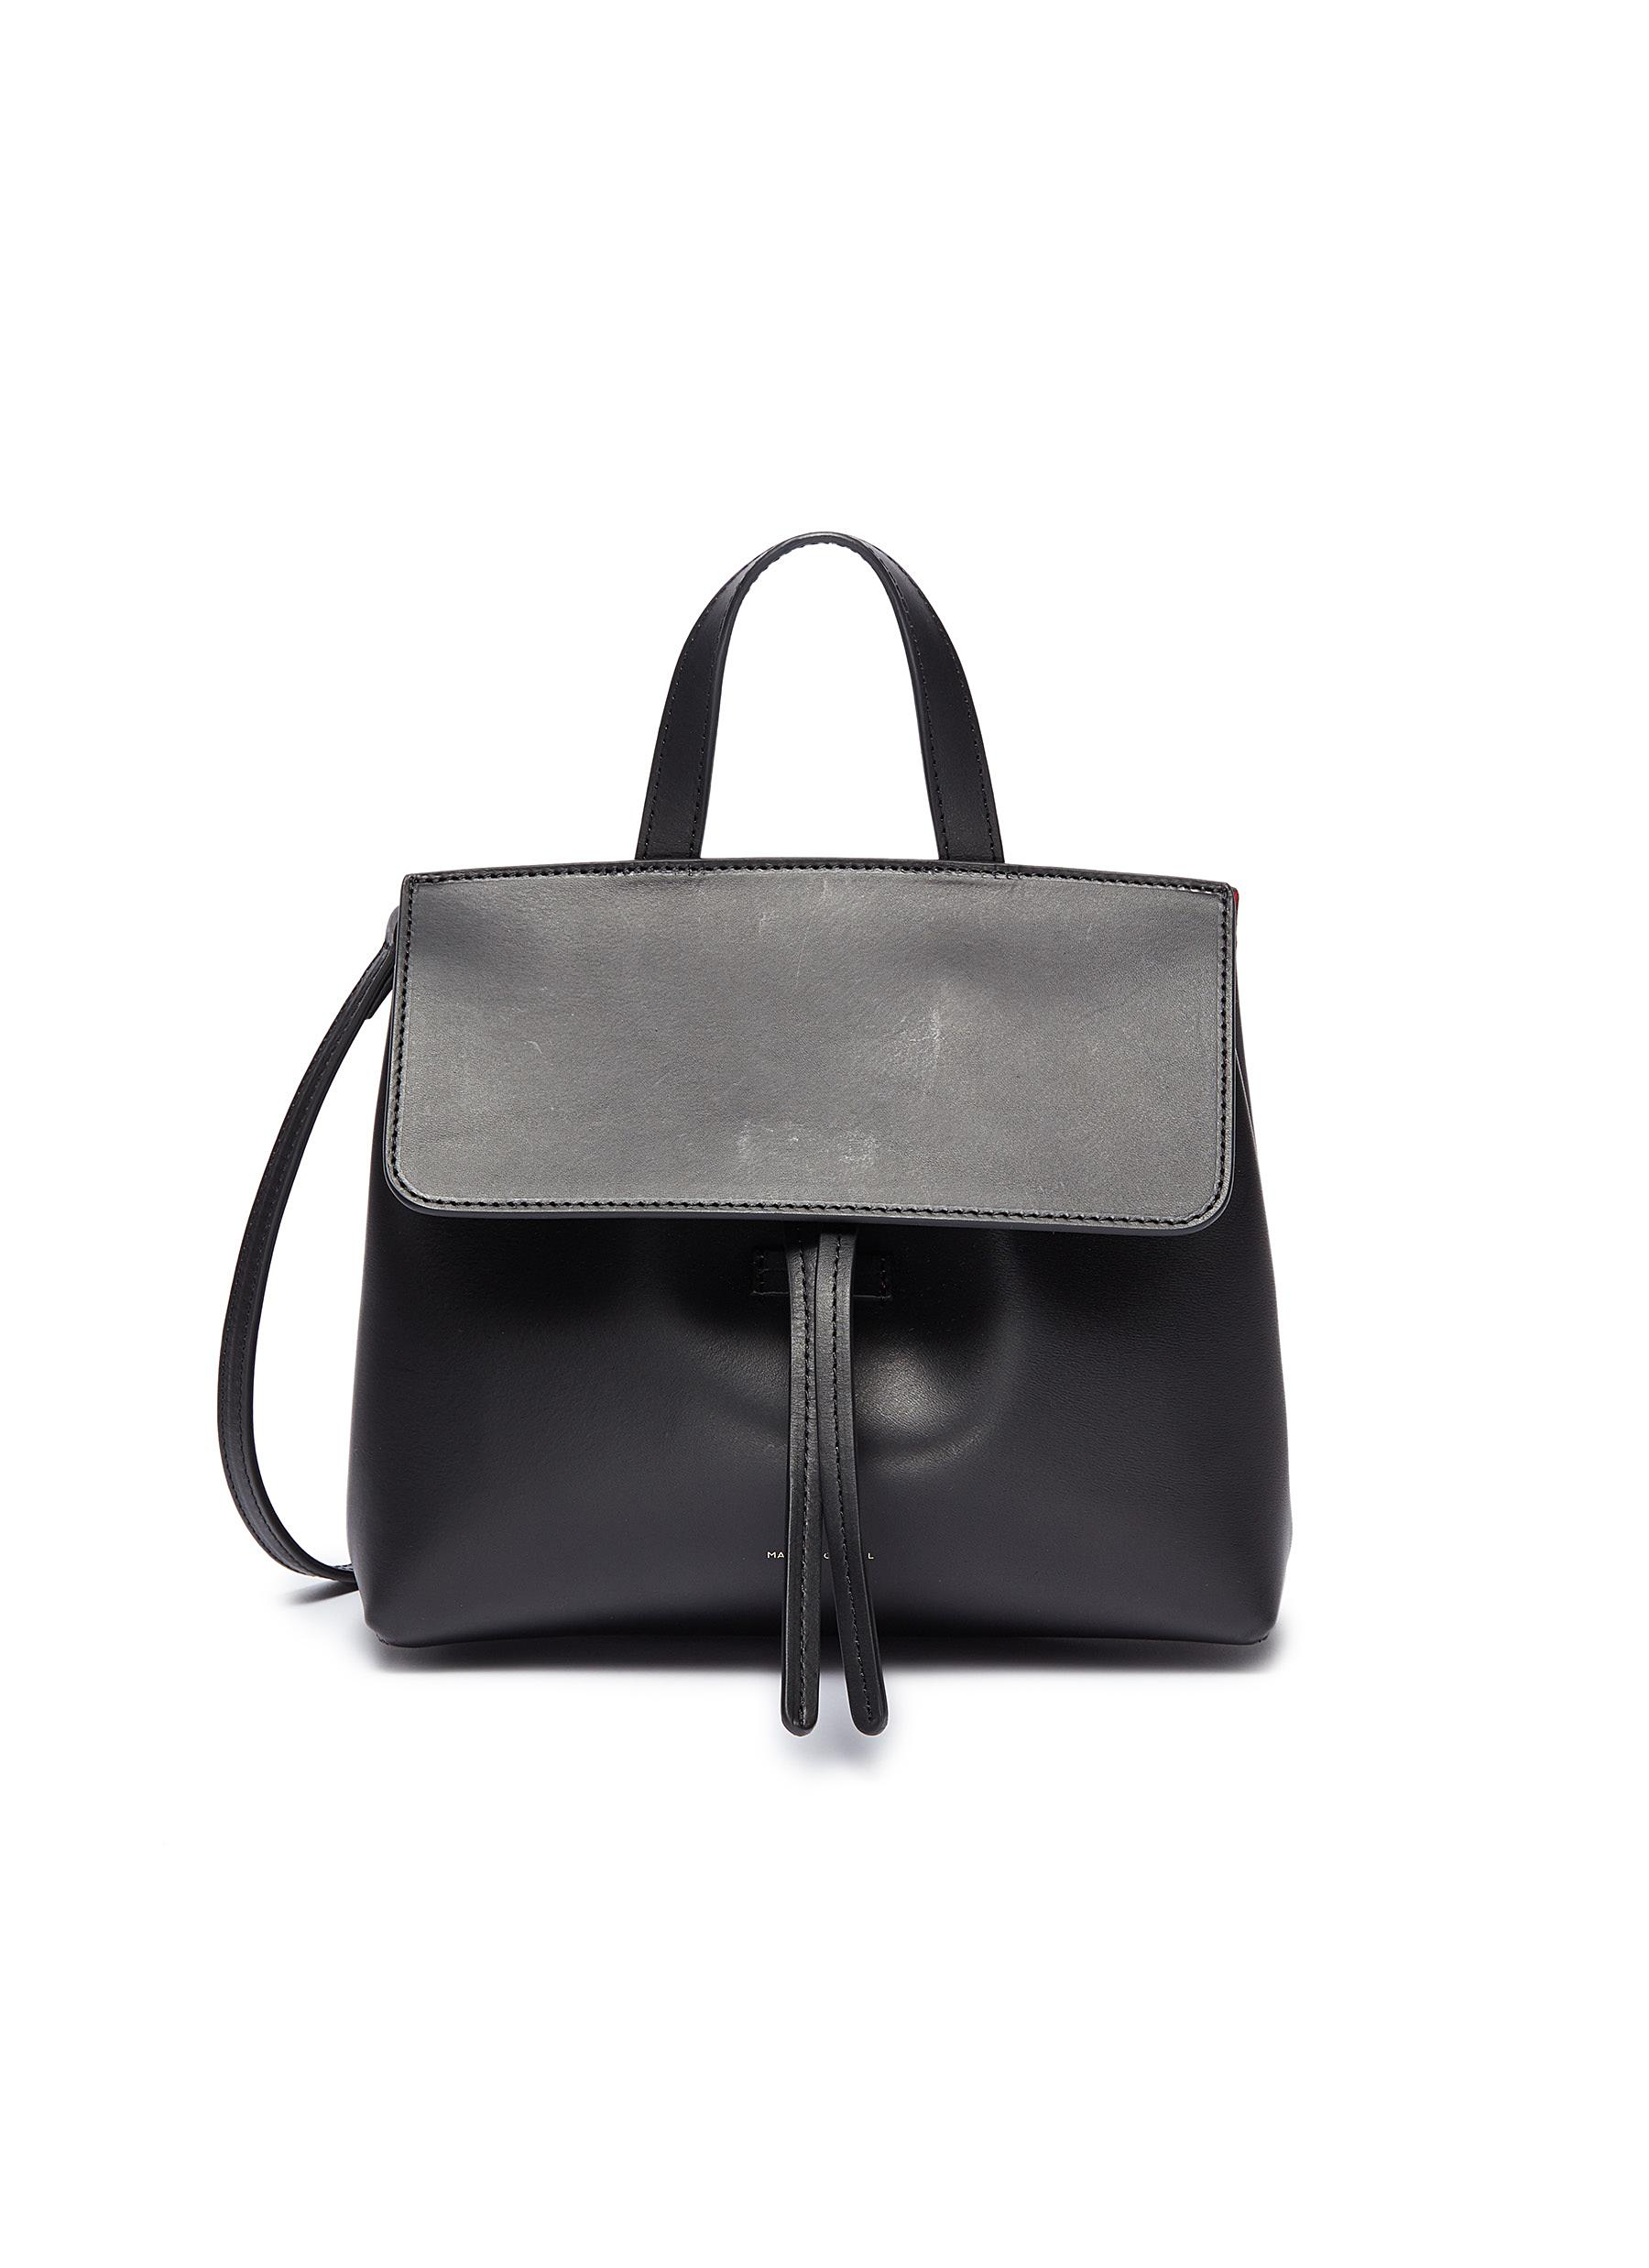 'Mini Mini Lady' leather shoulder bag